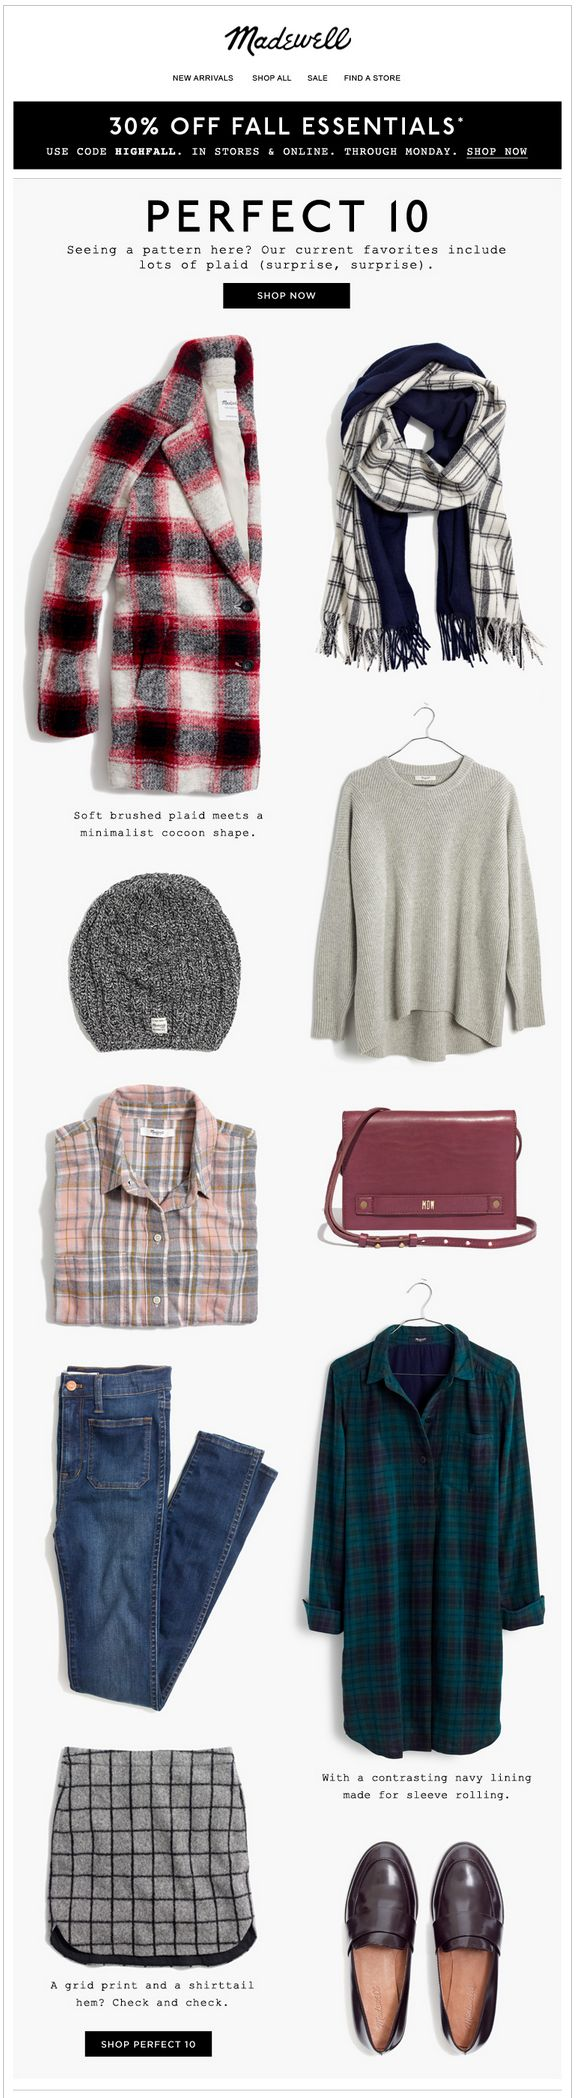 Madewell fall clothes email. Subject line: Today's edition of Perfect 10, starring plaid